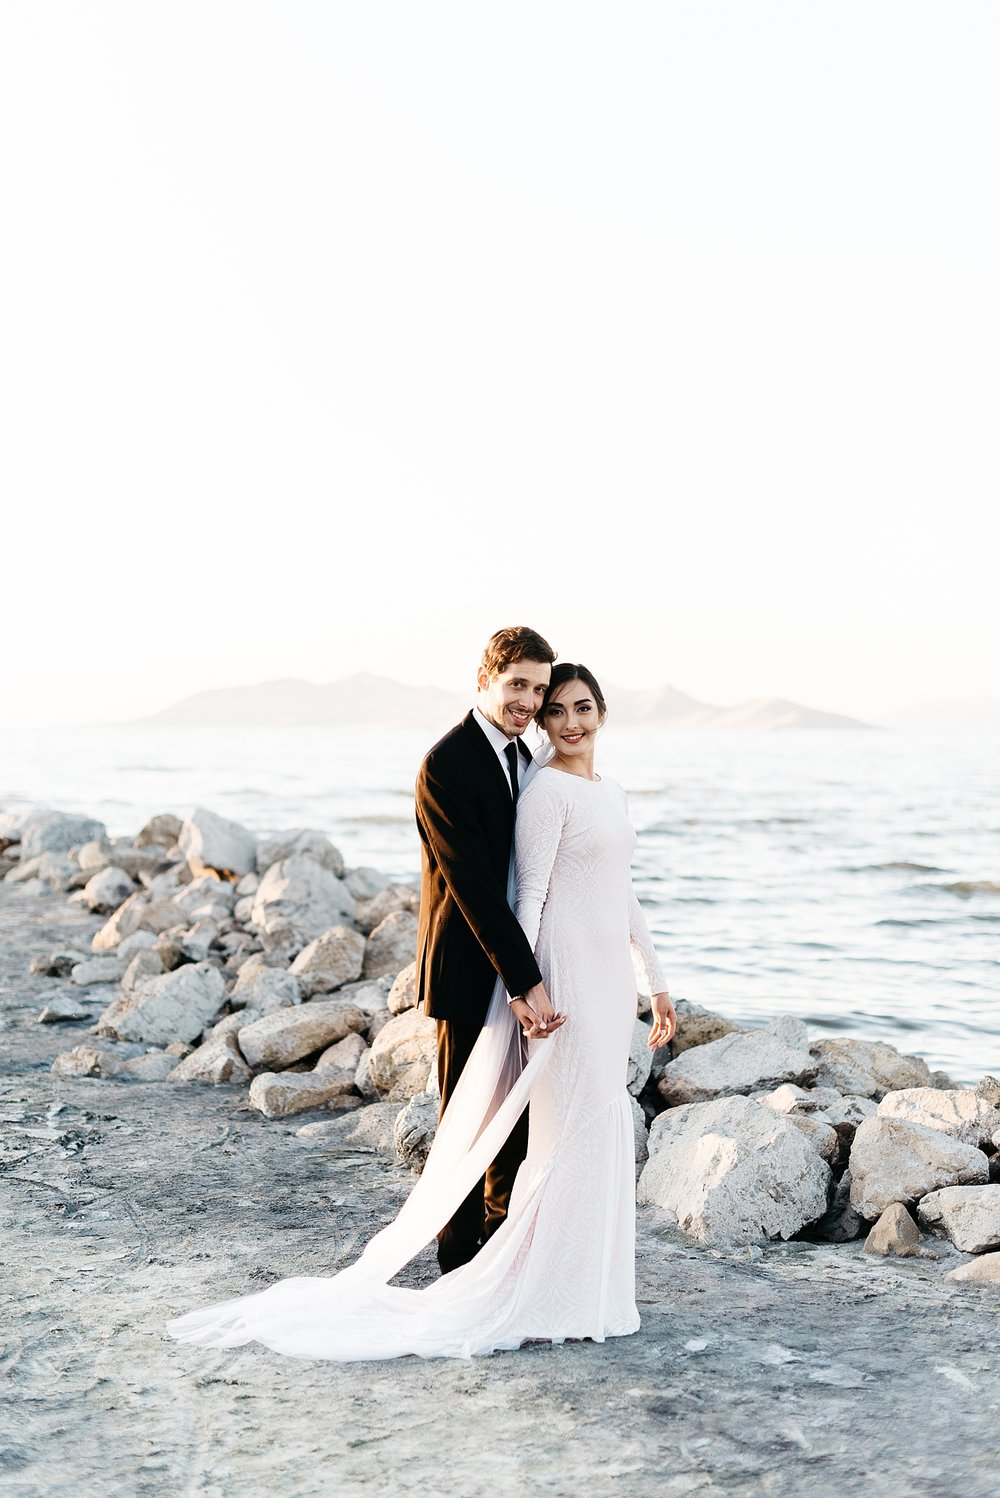 Zandra Barriga Photo - Cassie and Tristan Great Salt Lake Bridas_0011.jpg